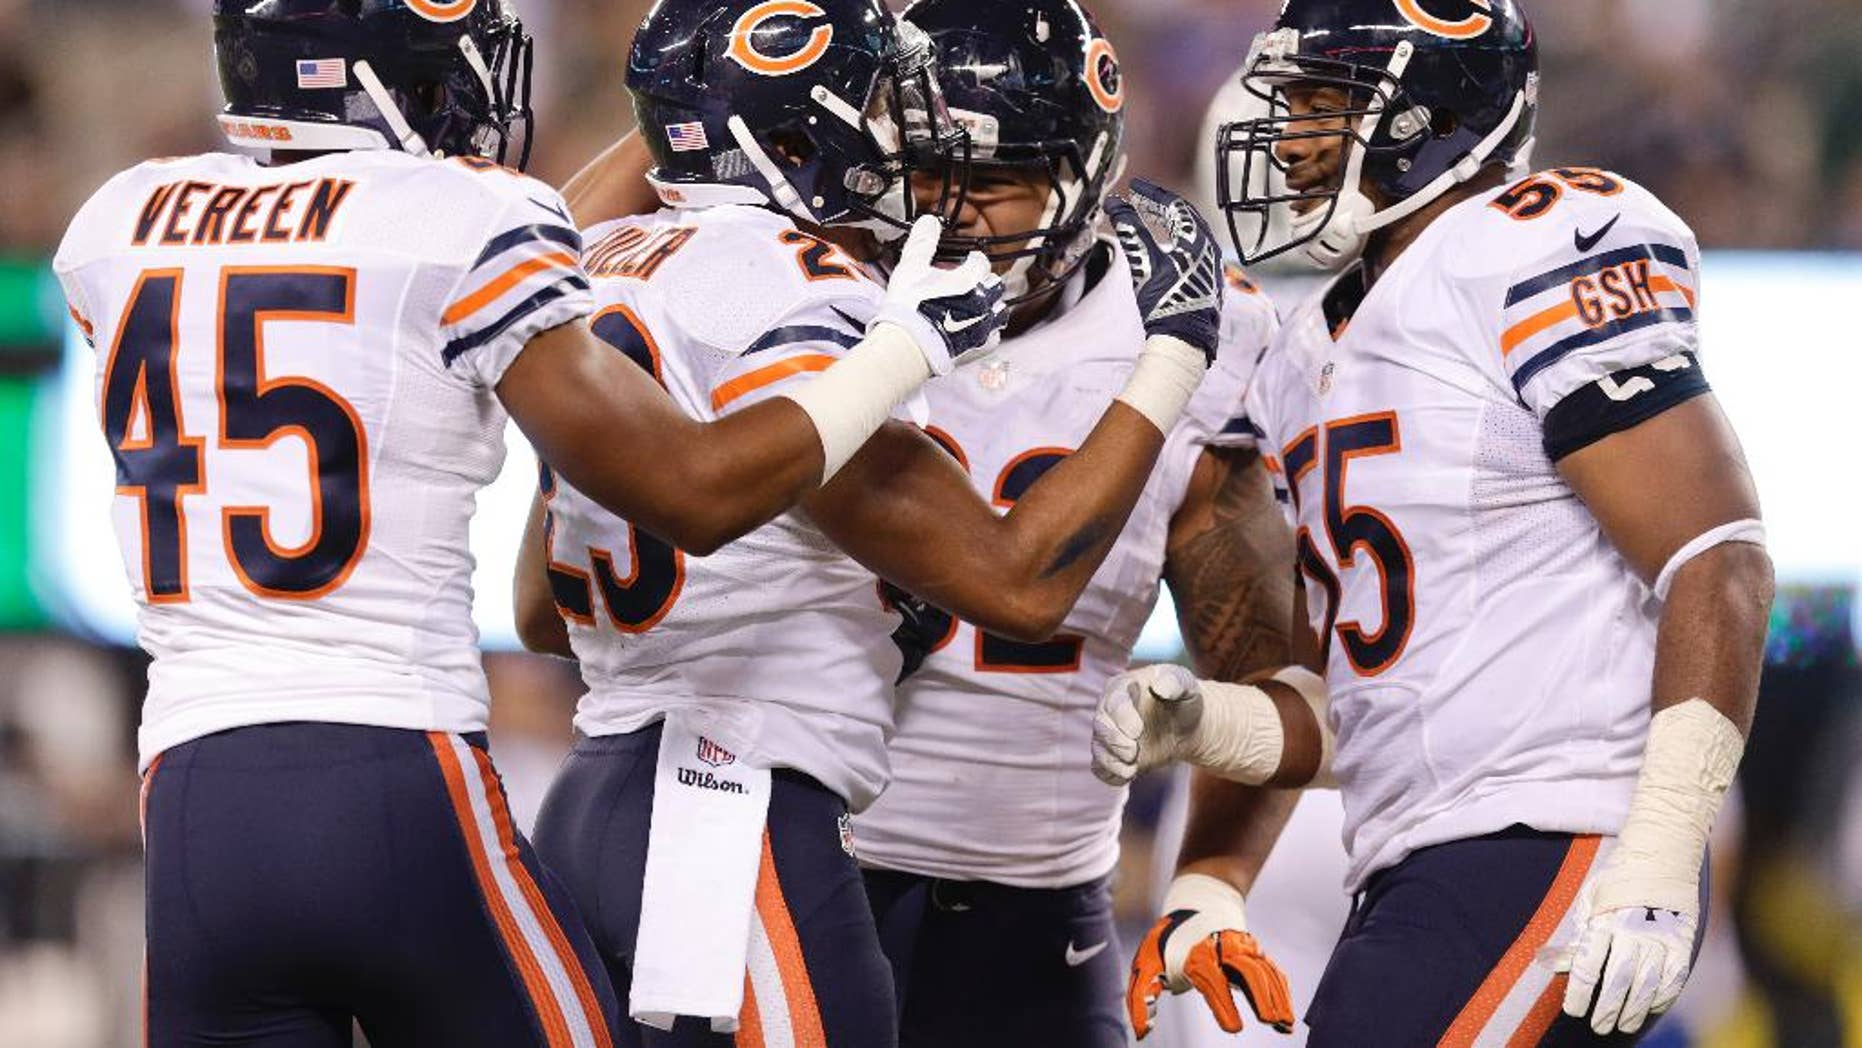 Chicago Bears cornerback Kyle Fuller (23) celebrates with teammates after intercepting a pass in the end zone against the New York Jets during the third quarter of an NFL football game, Monday, Sept. 22, 2014, in East Rutherford, N.J. (AP Photo/Julio Cortez)